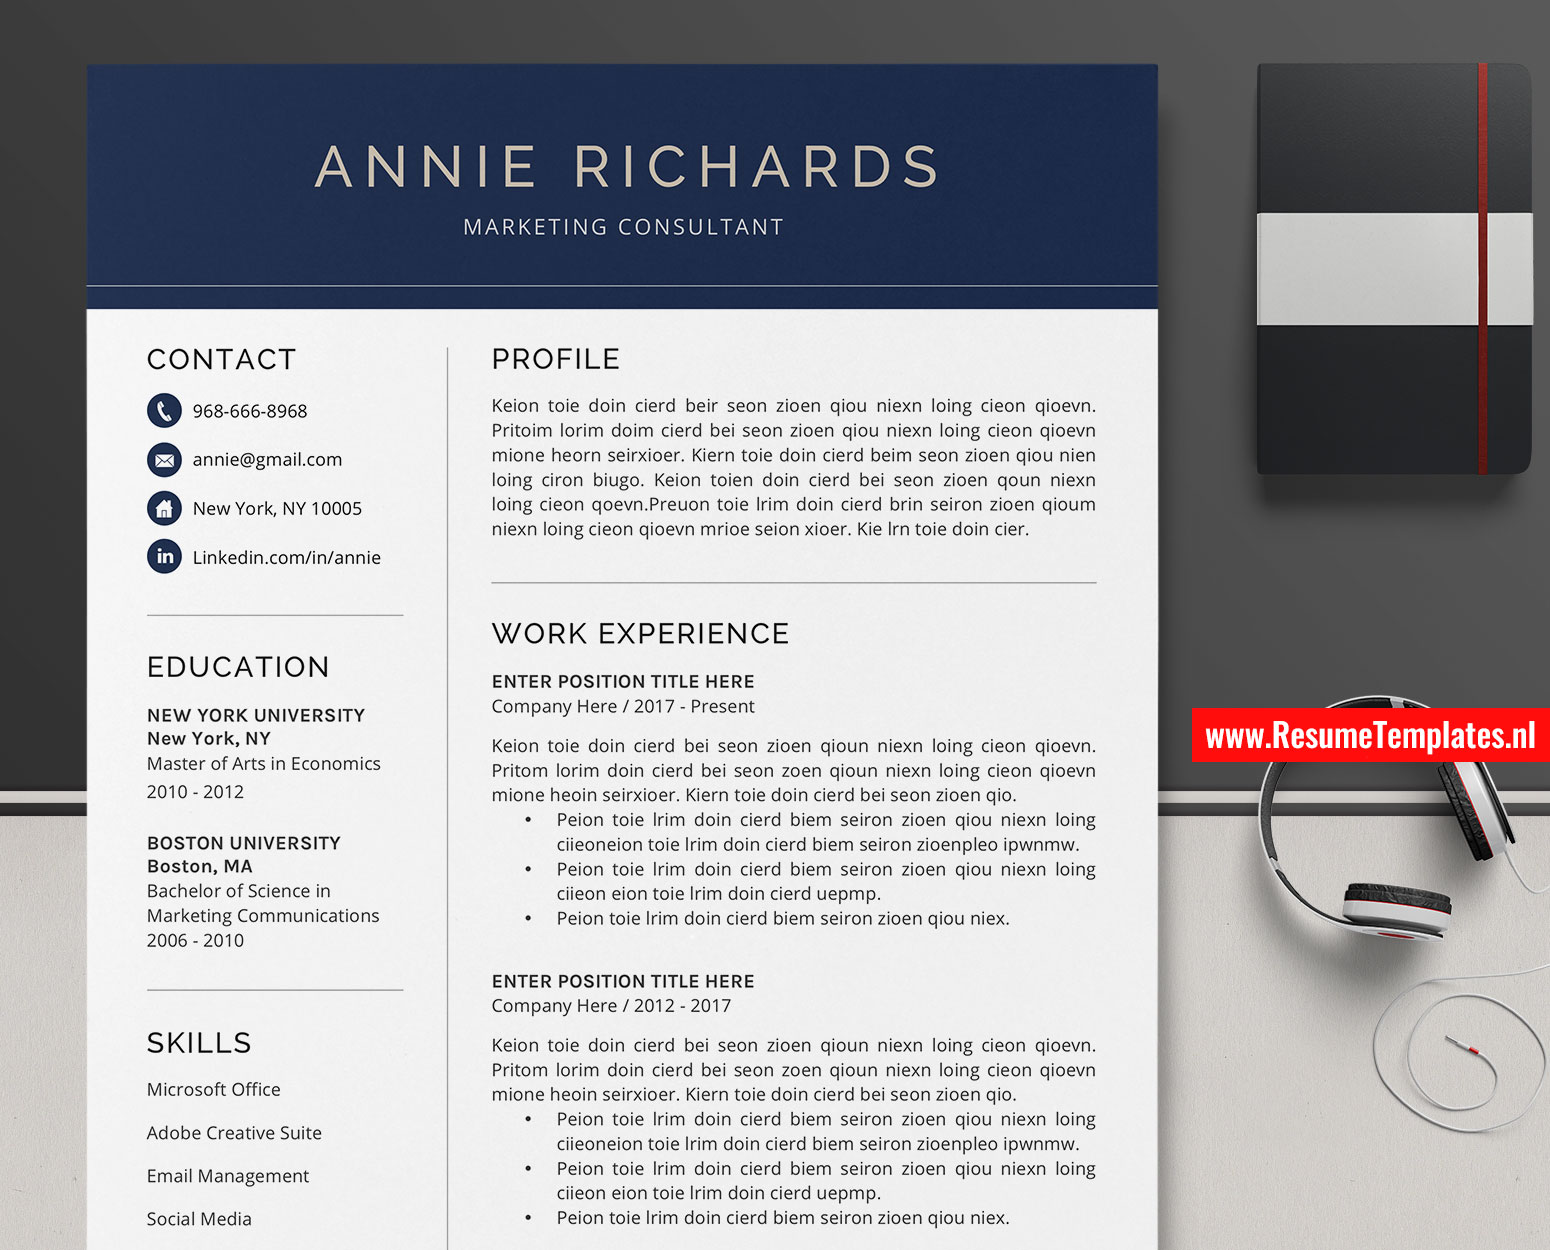 Search sample resumes by your professional industry. Cv Template Resume Template For Ms Word Professional Resume Simple Resume Modern Resume 1 3 Page Resume Design Teacher Resume Best Selling Resume Instant Download Resumetemplates Nl